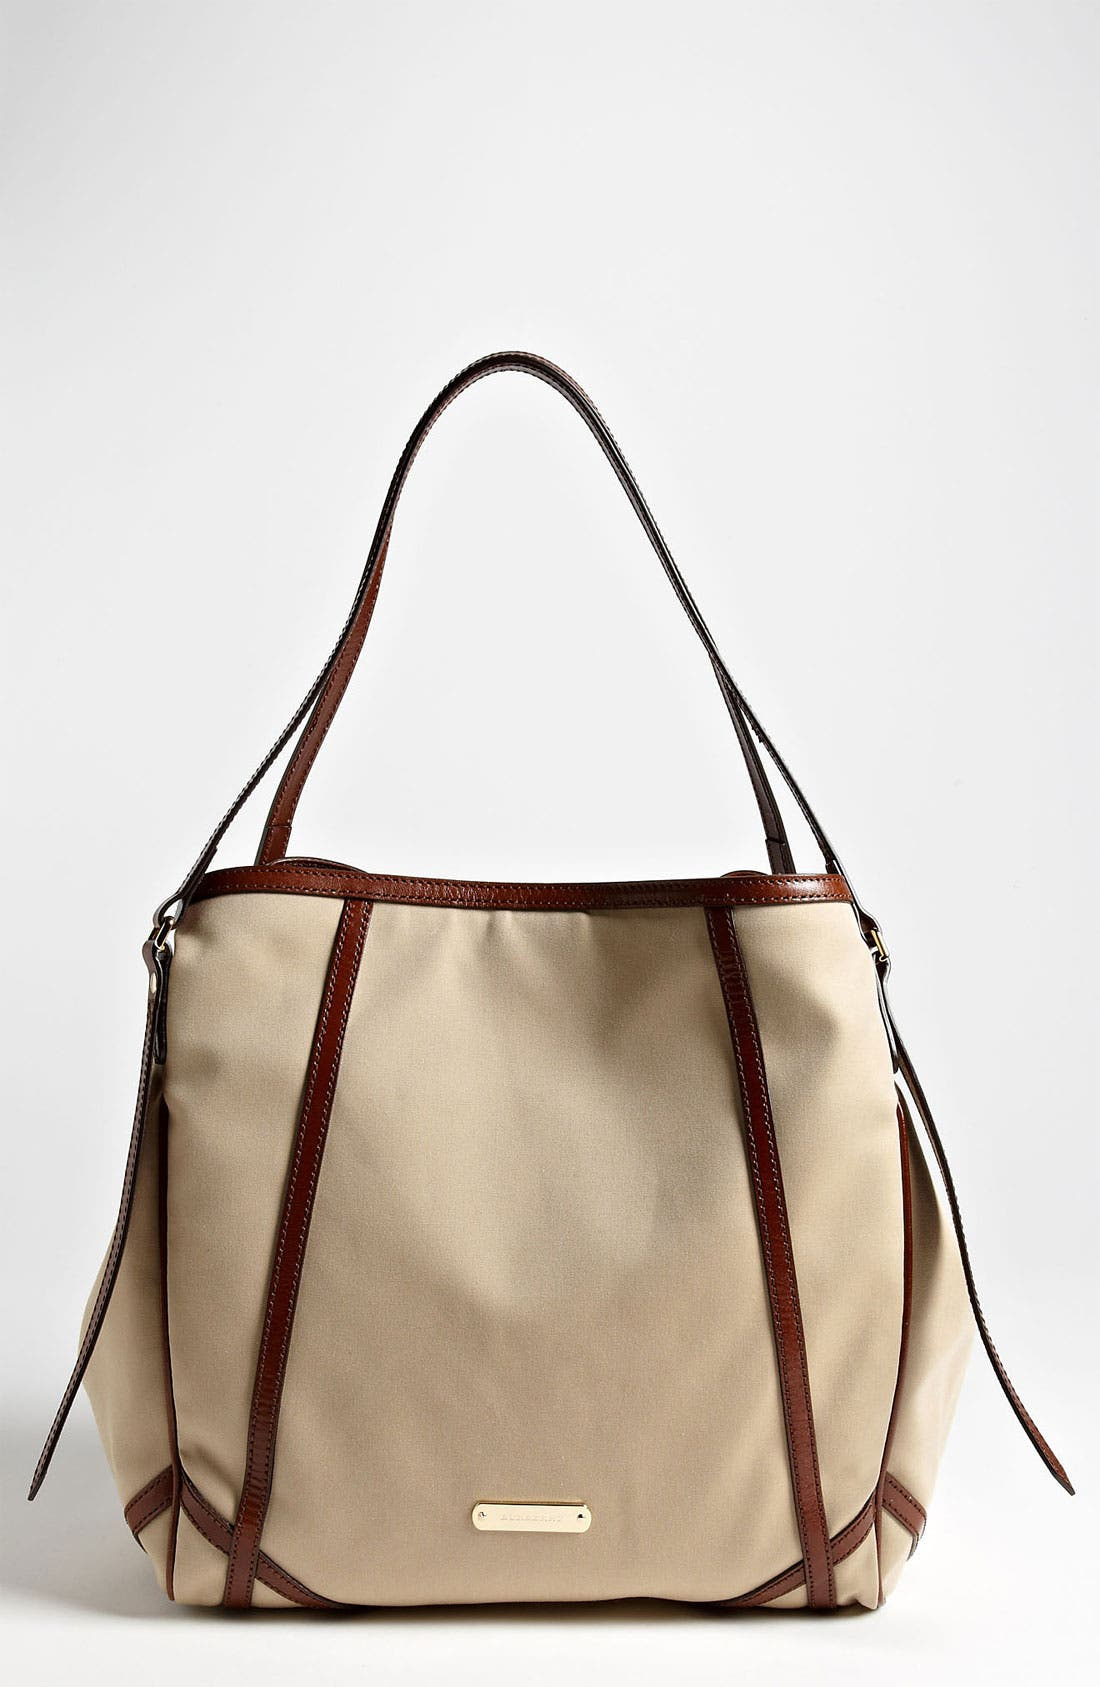 Alternate Image 1 Selected - Burberry 'Trench - Medium' Fabric Tote